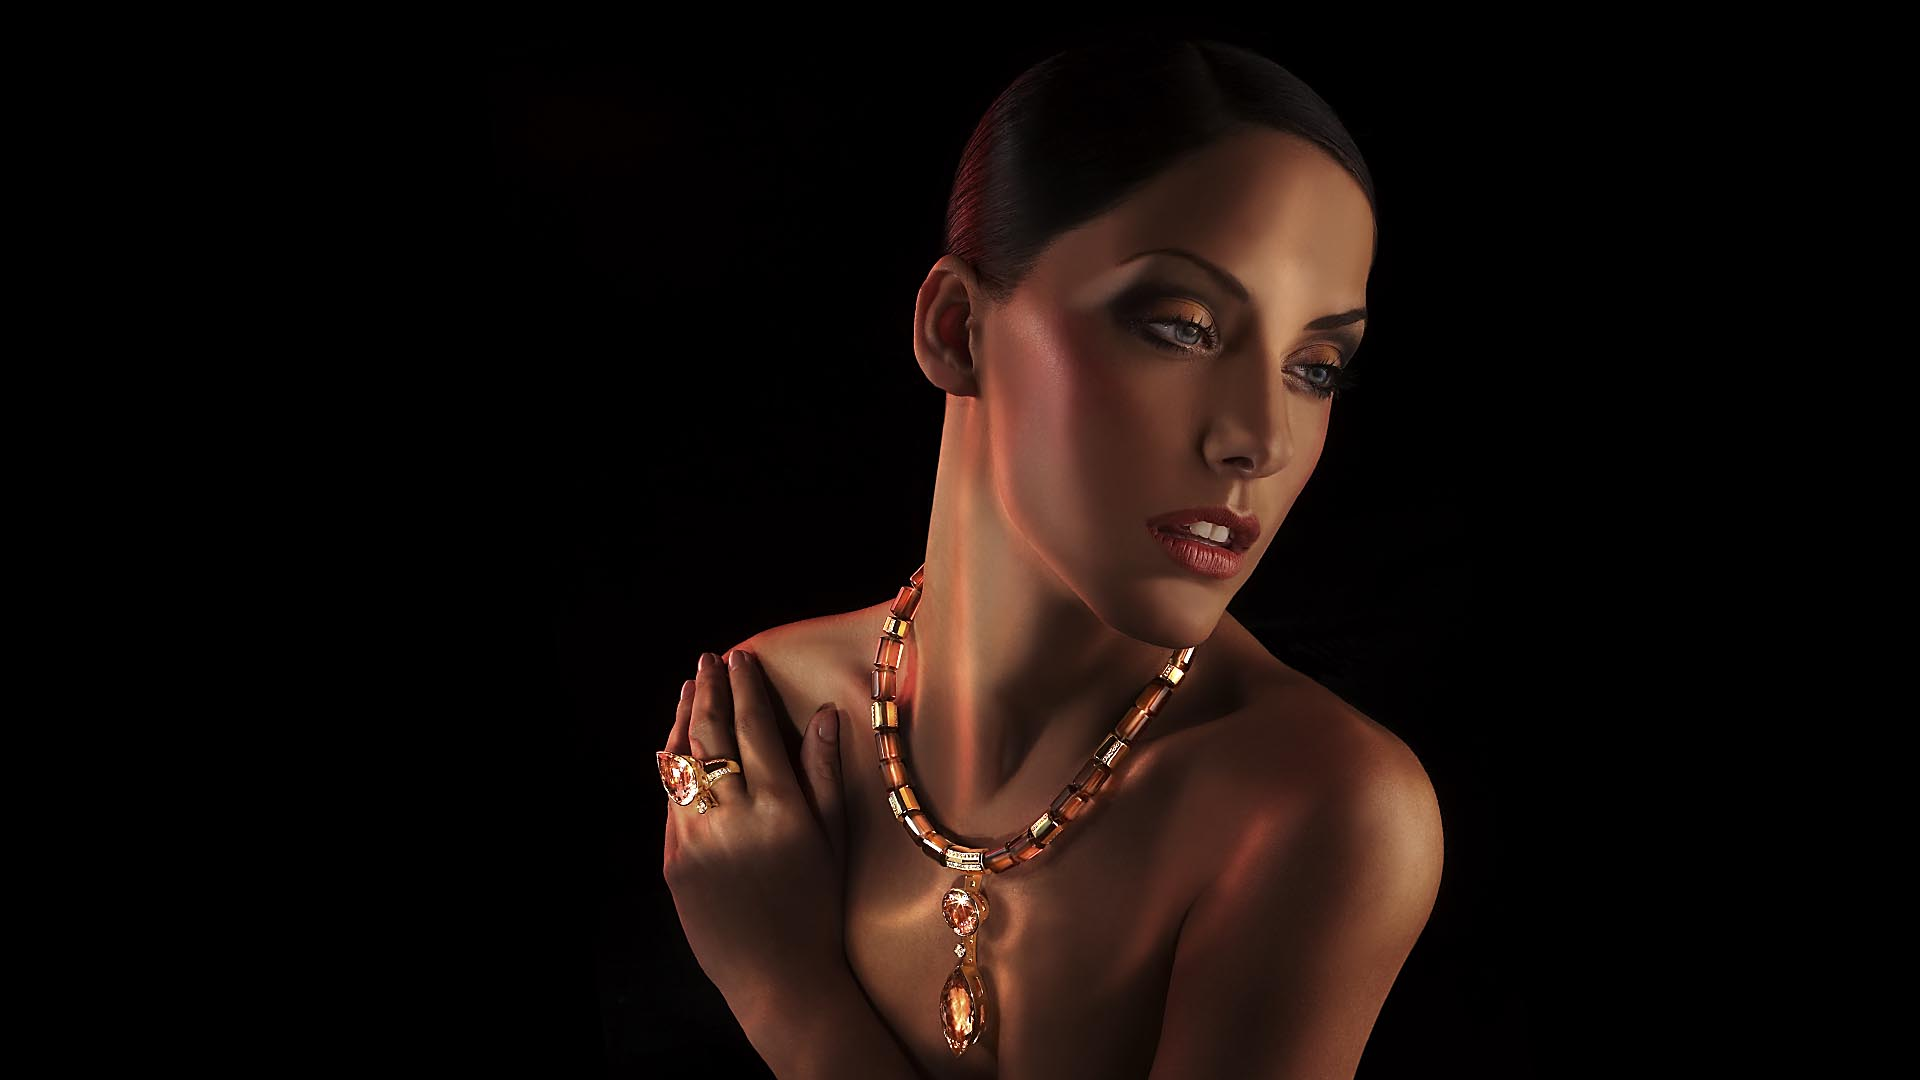 Photography jewels with modell. Imageshot done for Juwelier Leicht